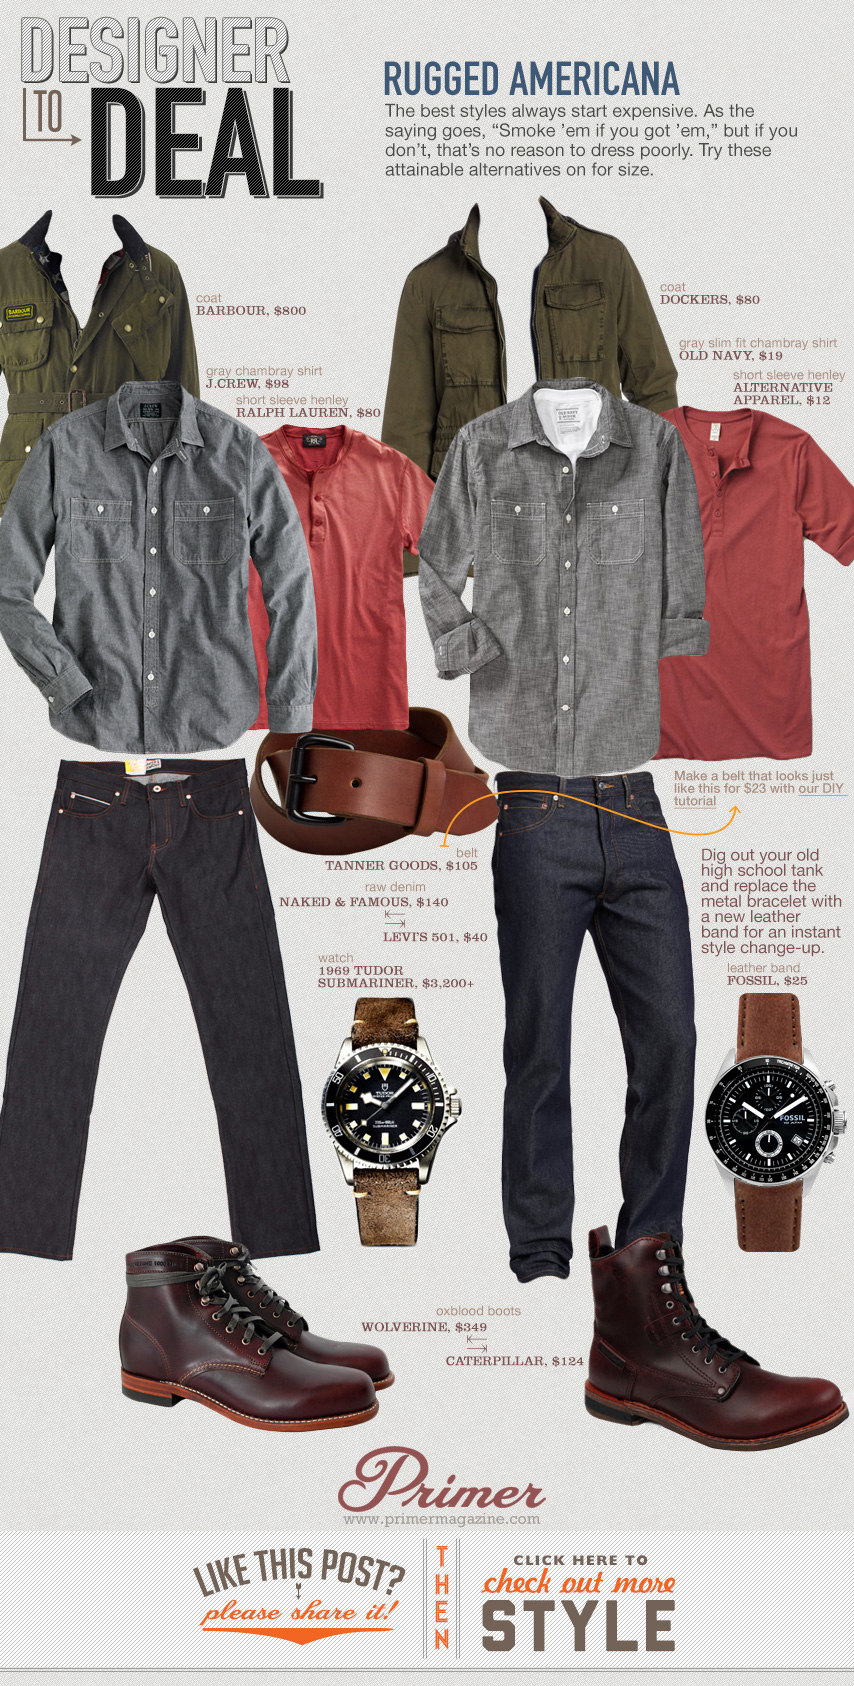 Designer to Deal Rugged Americana 2 price options for chambray shirt, red henley, dark jeans, boots and watch